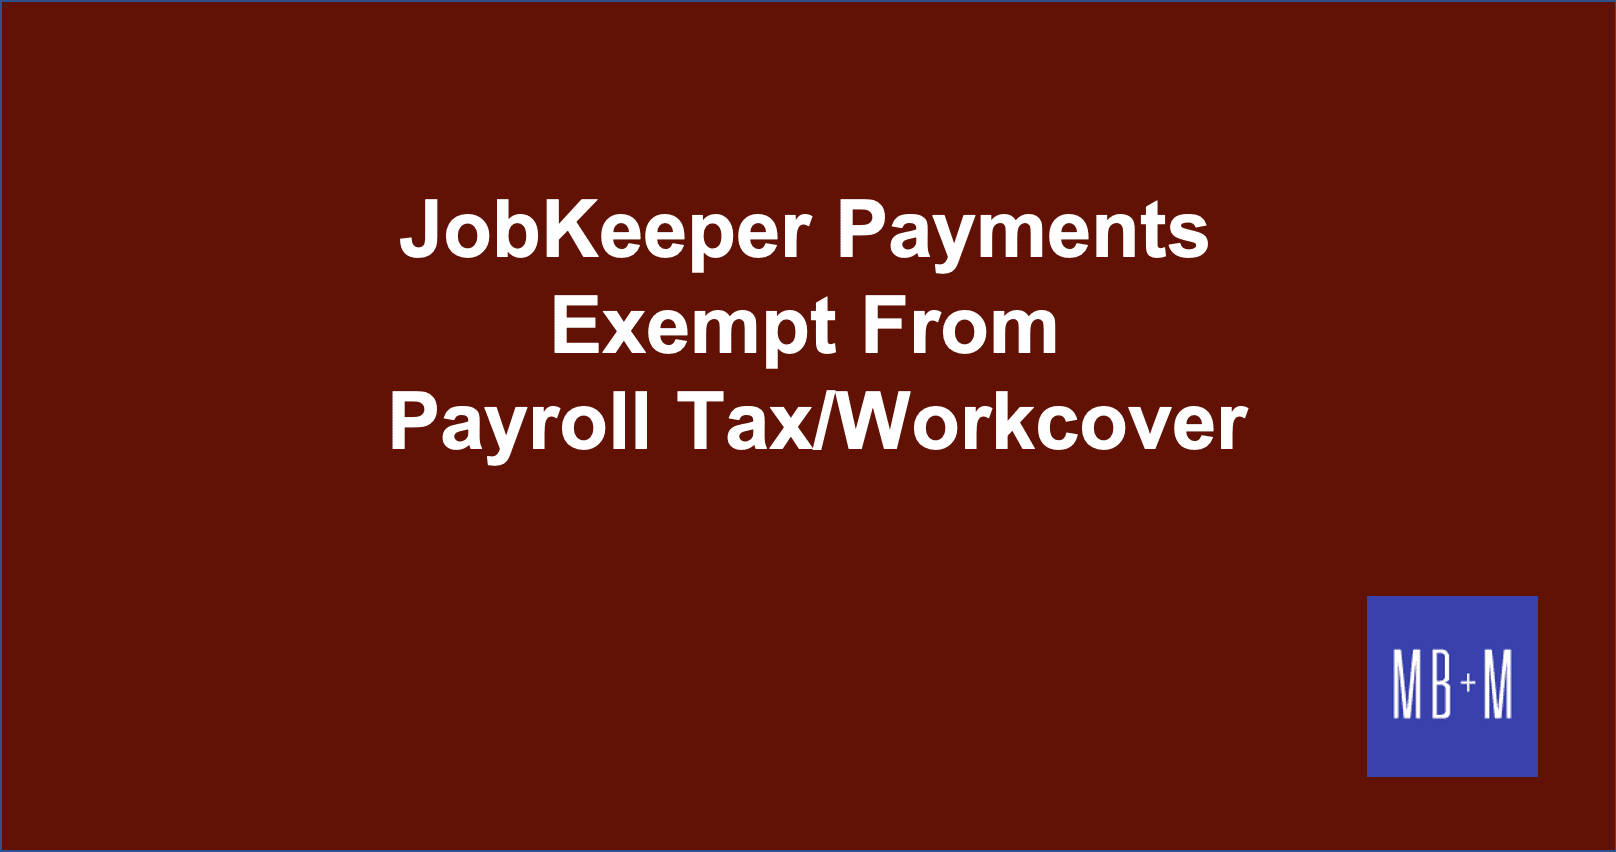 JobKeeper Payments Exempt From Payroll Tax & Workcover Levy